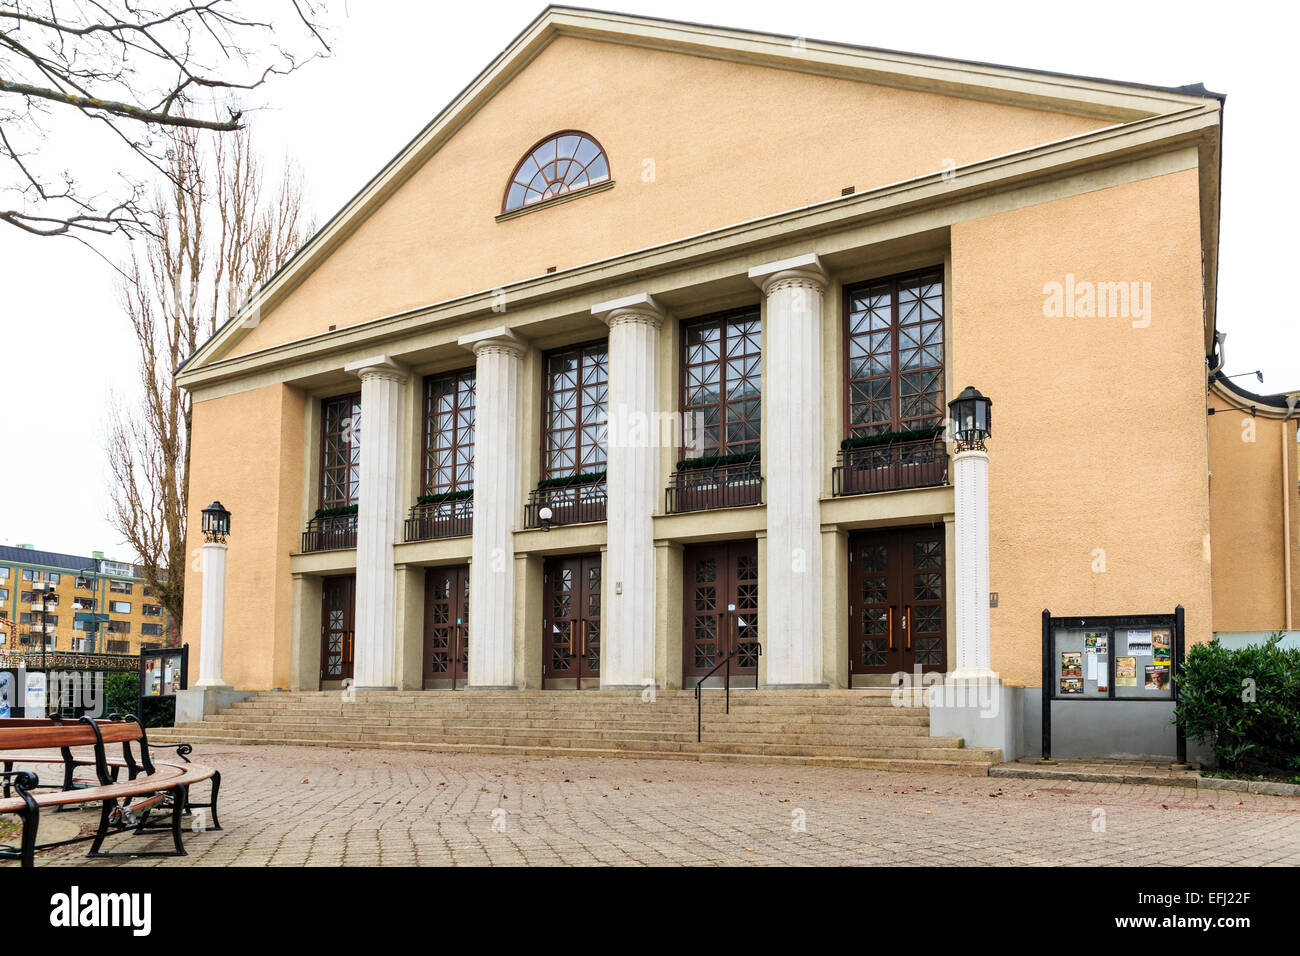 Exterior view and entrance to Lorensbergsteatern an old renowned swedish theater building in Gothenburg, Sweden - Stock Image